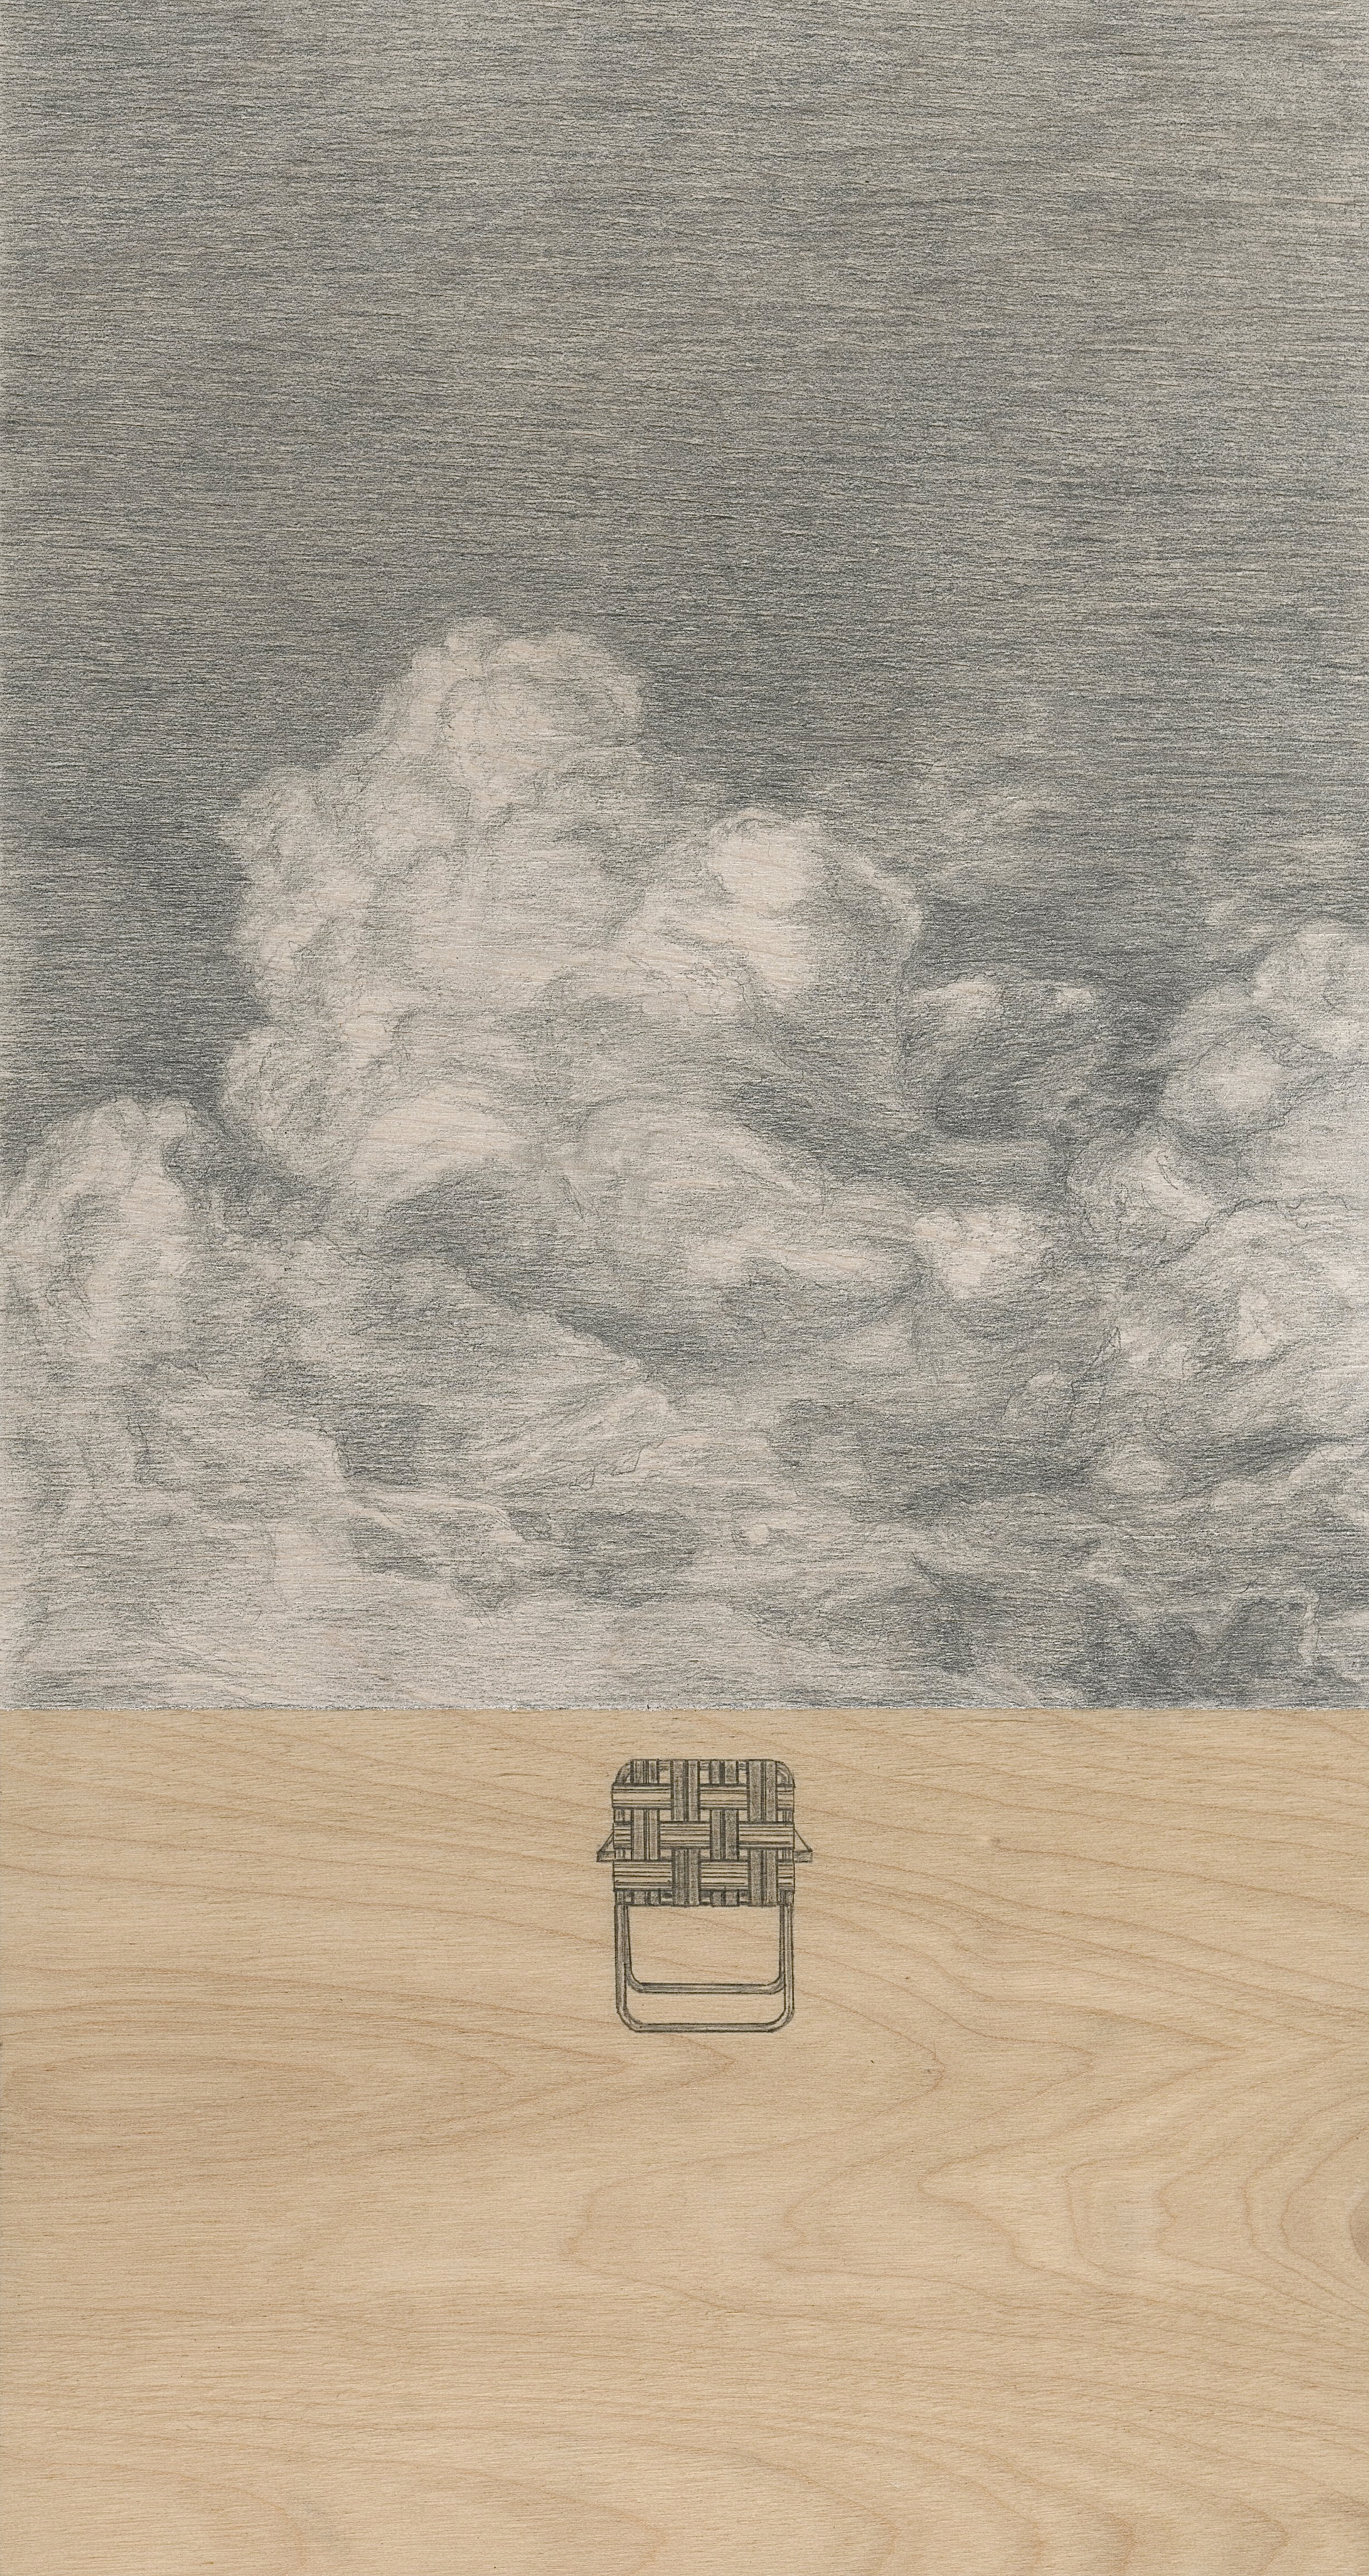 "Clouds and Chair / graphite and stain on birch panel / 13 x 7"" / SOLD"